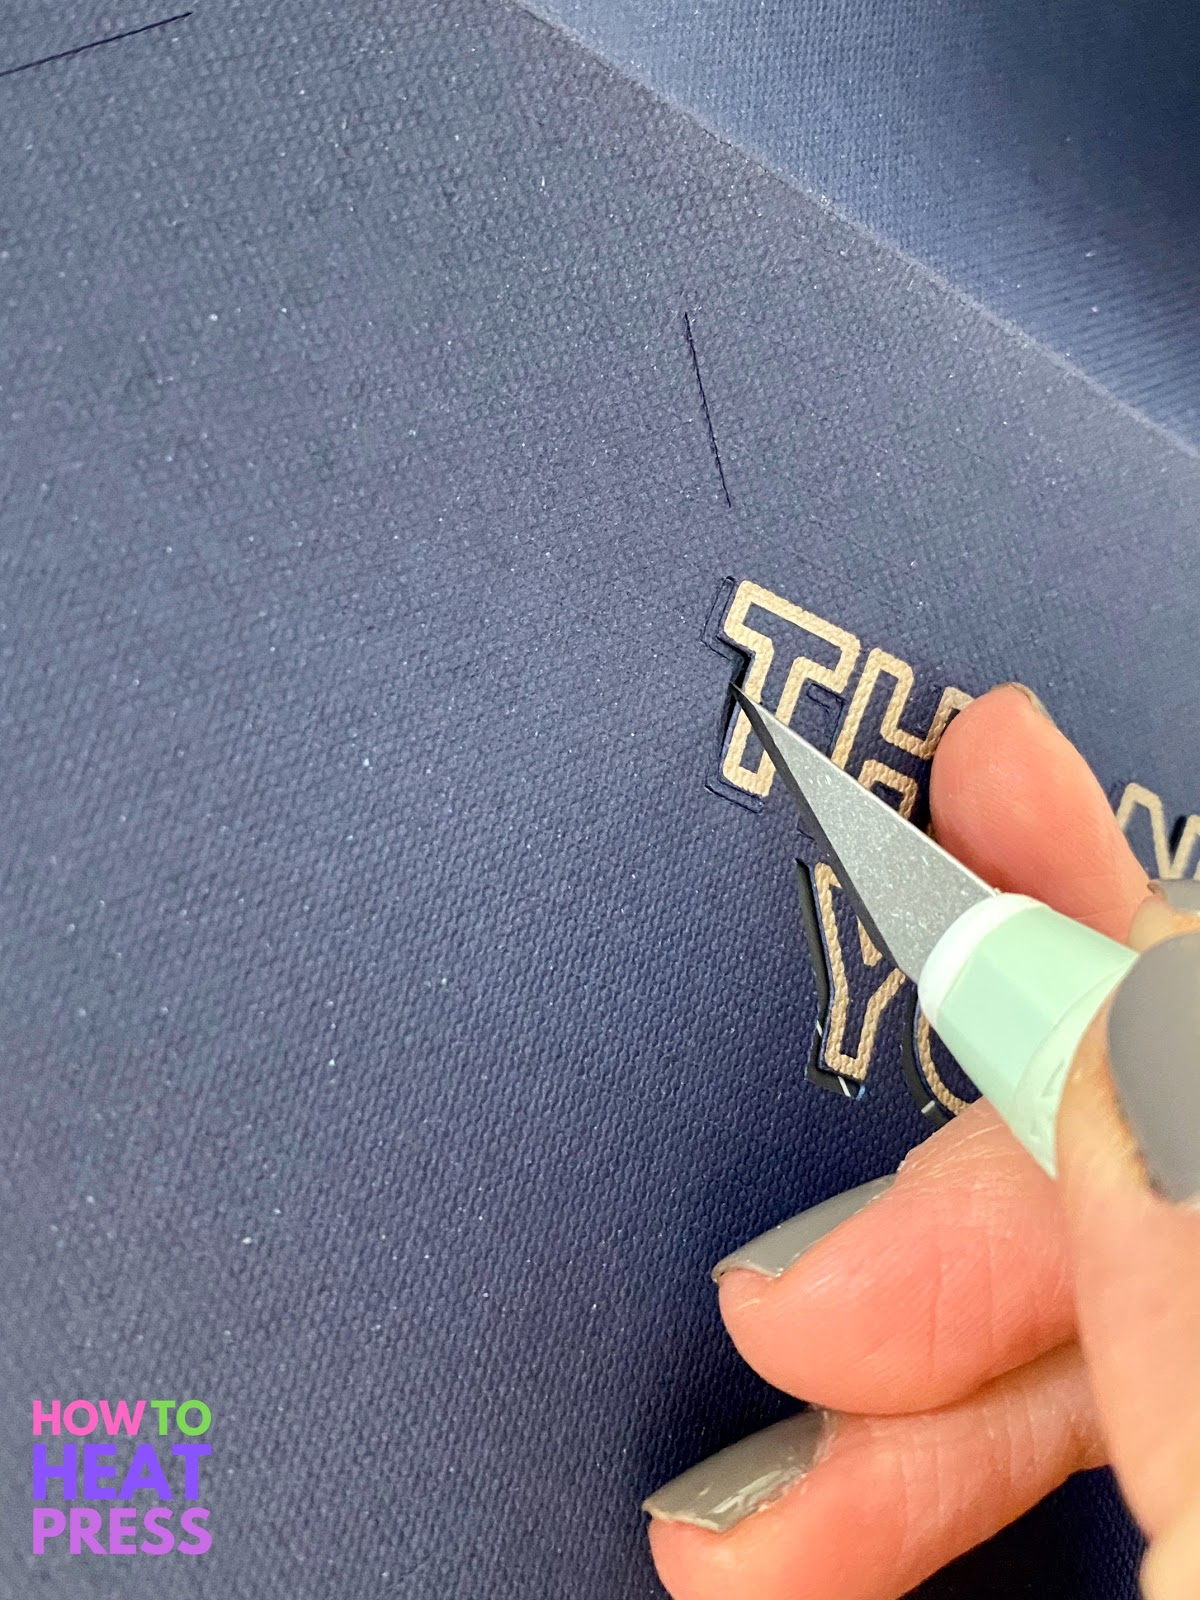 precision blade xacto knife removing cutouts on blue paper